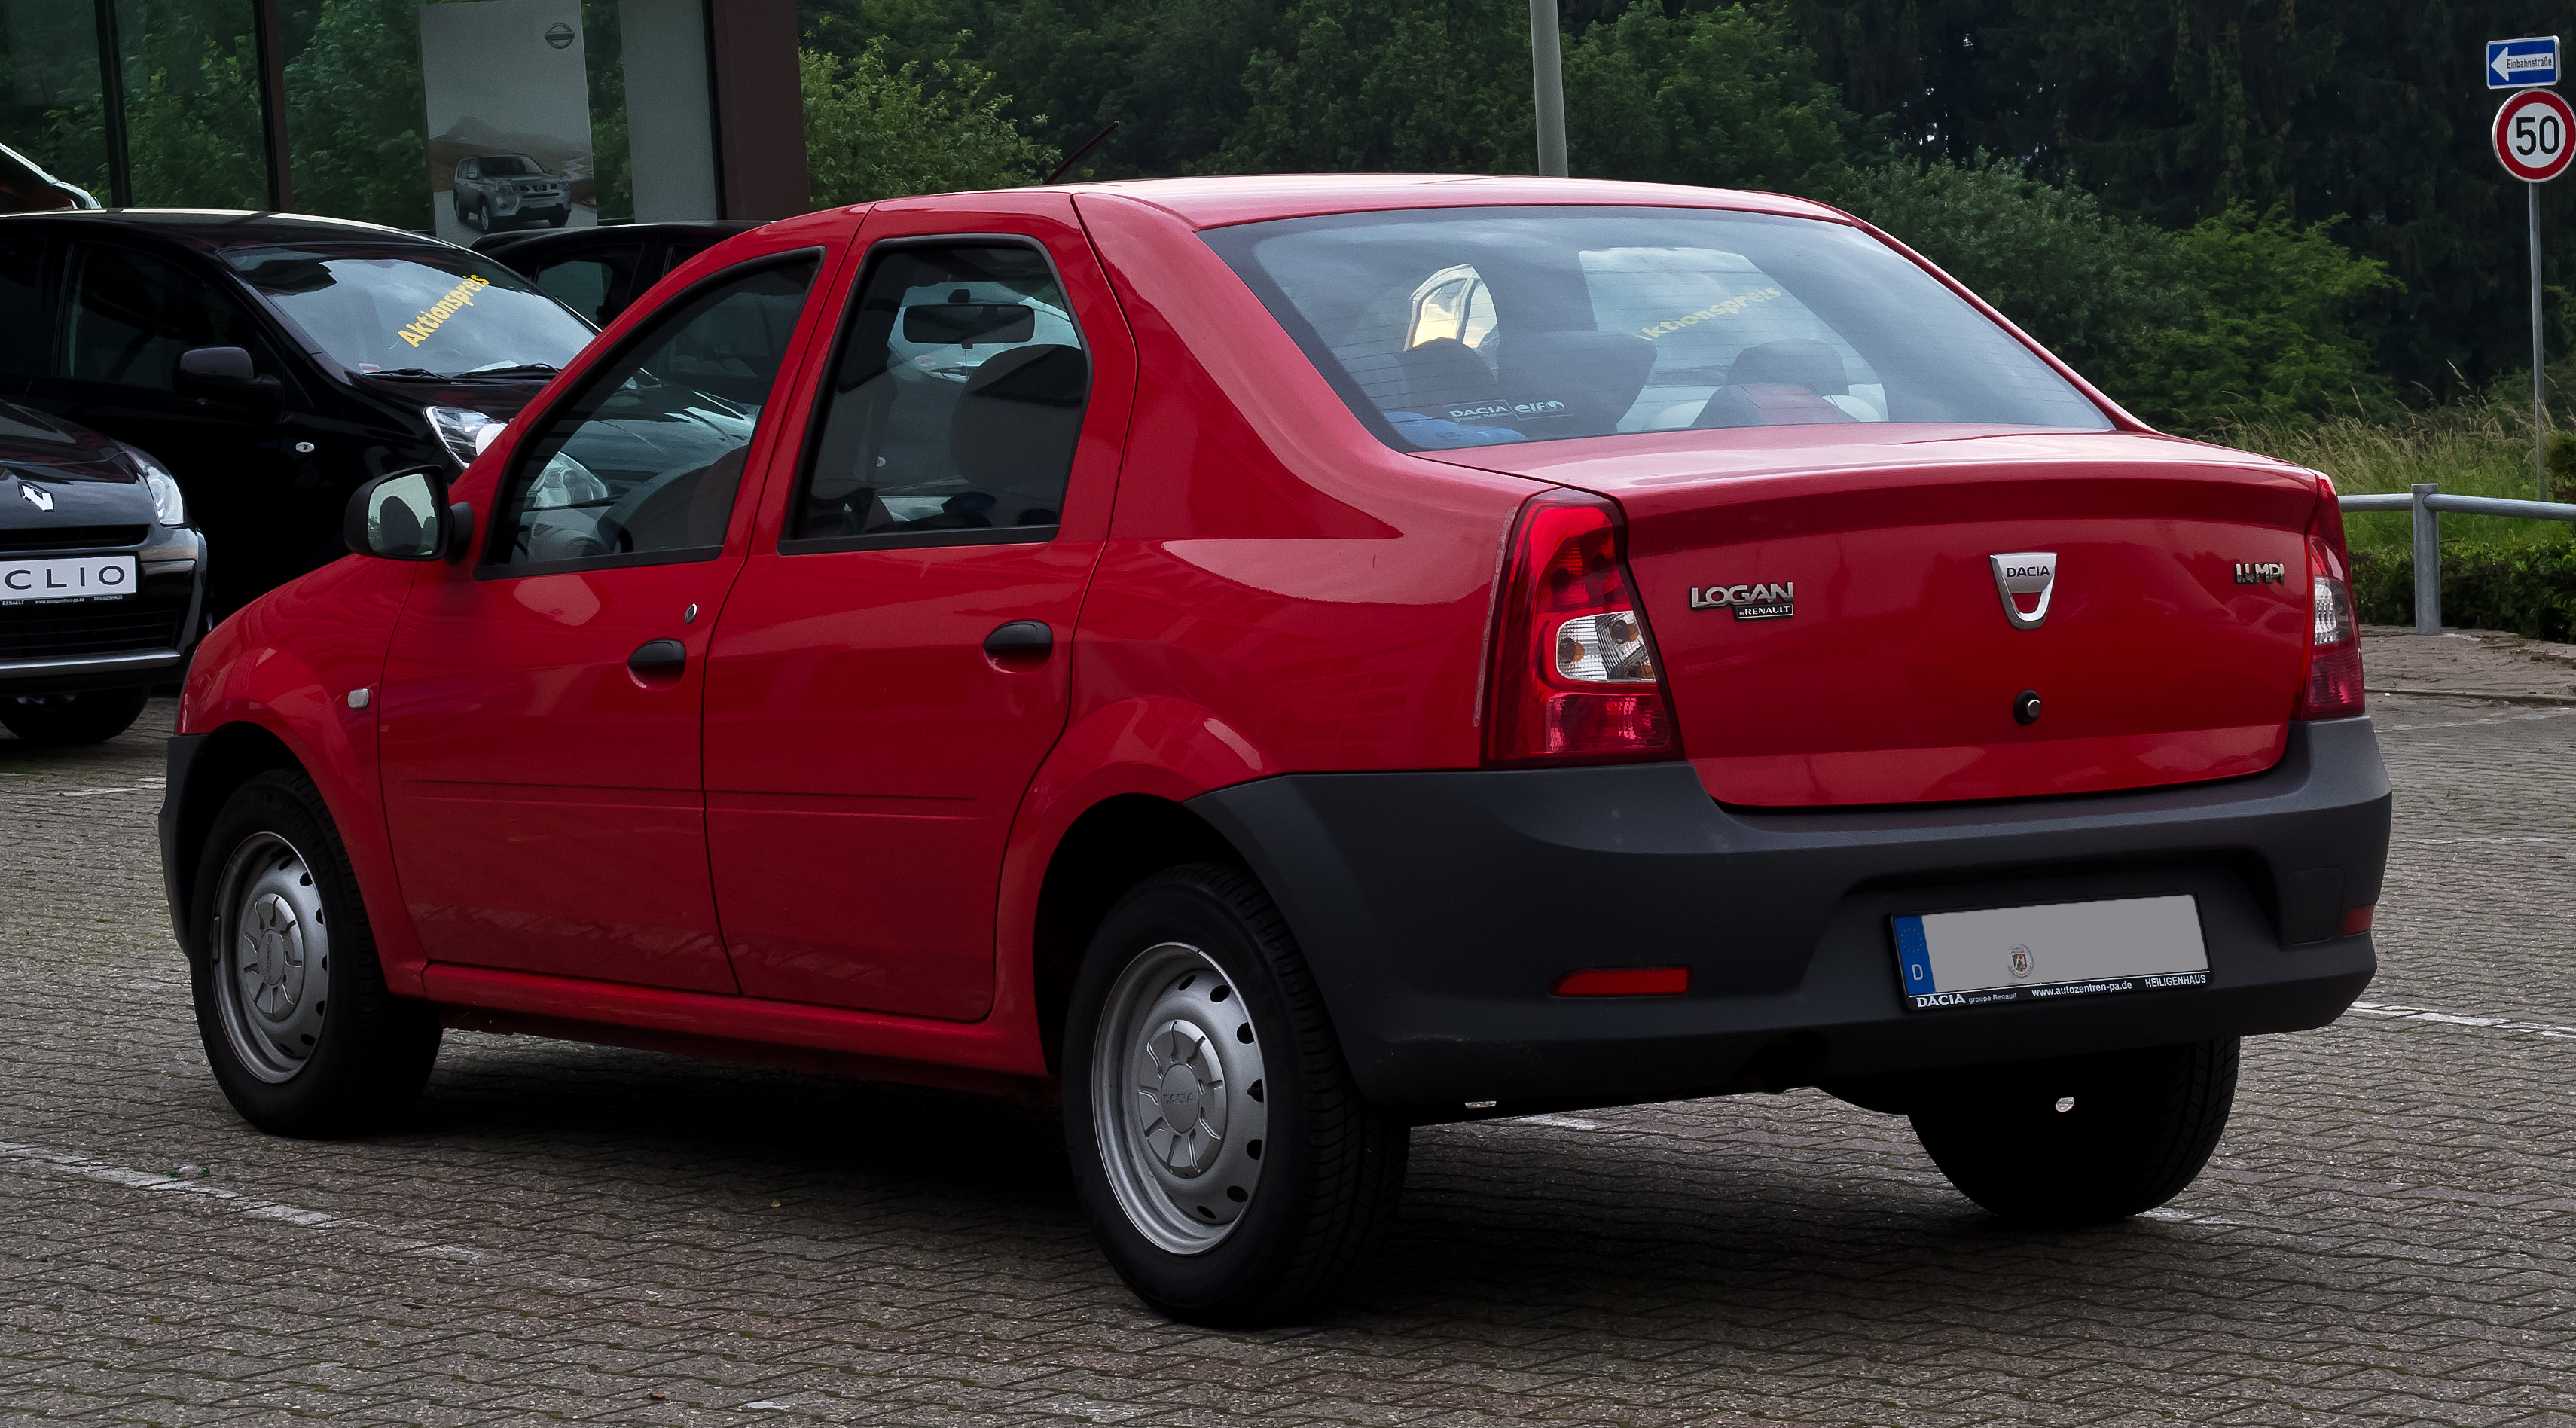 file dacia logan 1 4 mpi facelift heckansicht 19 juni 2012 wikipedia. Black Bedroom Furniture Sets. Home Design Ideas